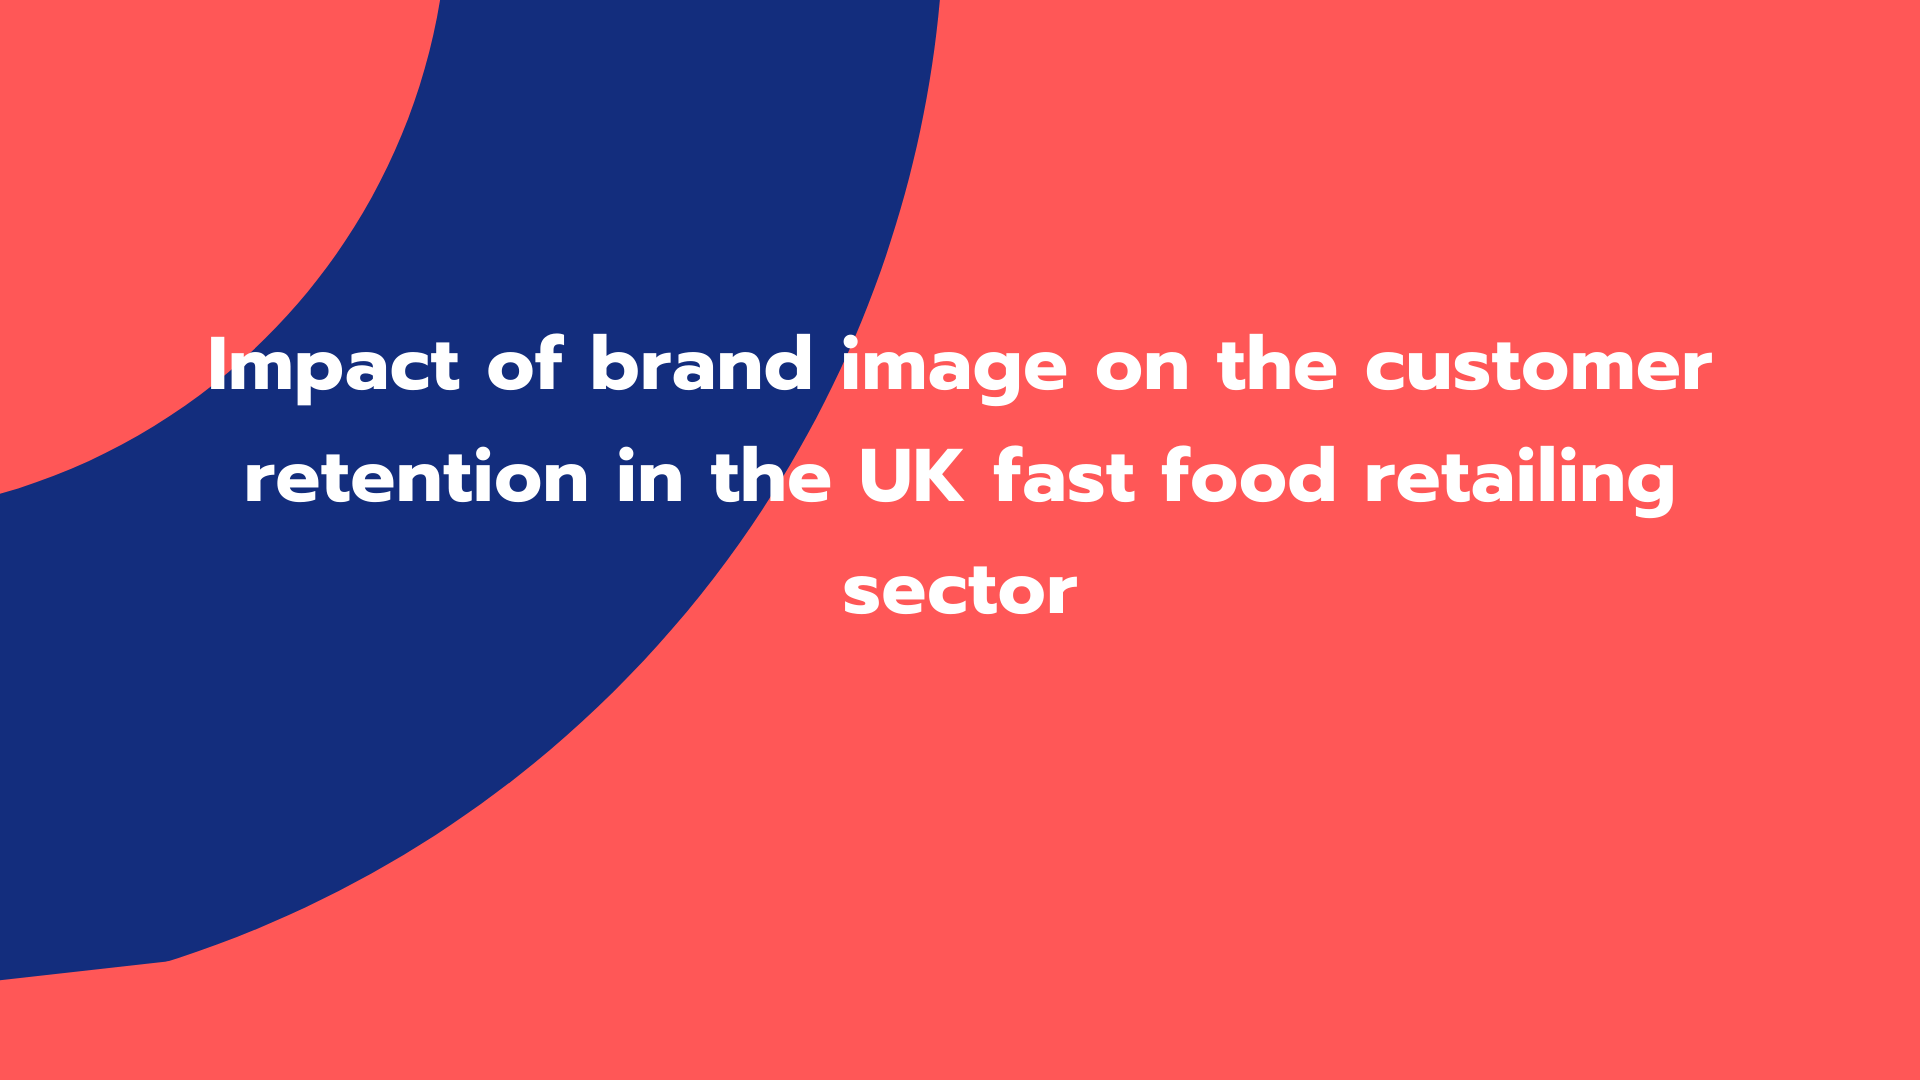 Impact of brand image on the customer retention in the UK fast food retailing sector